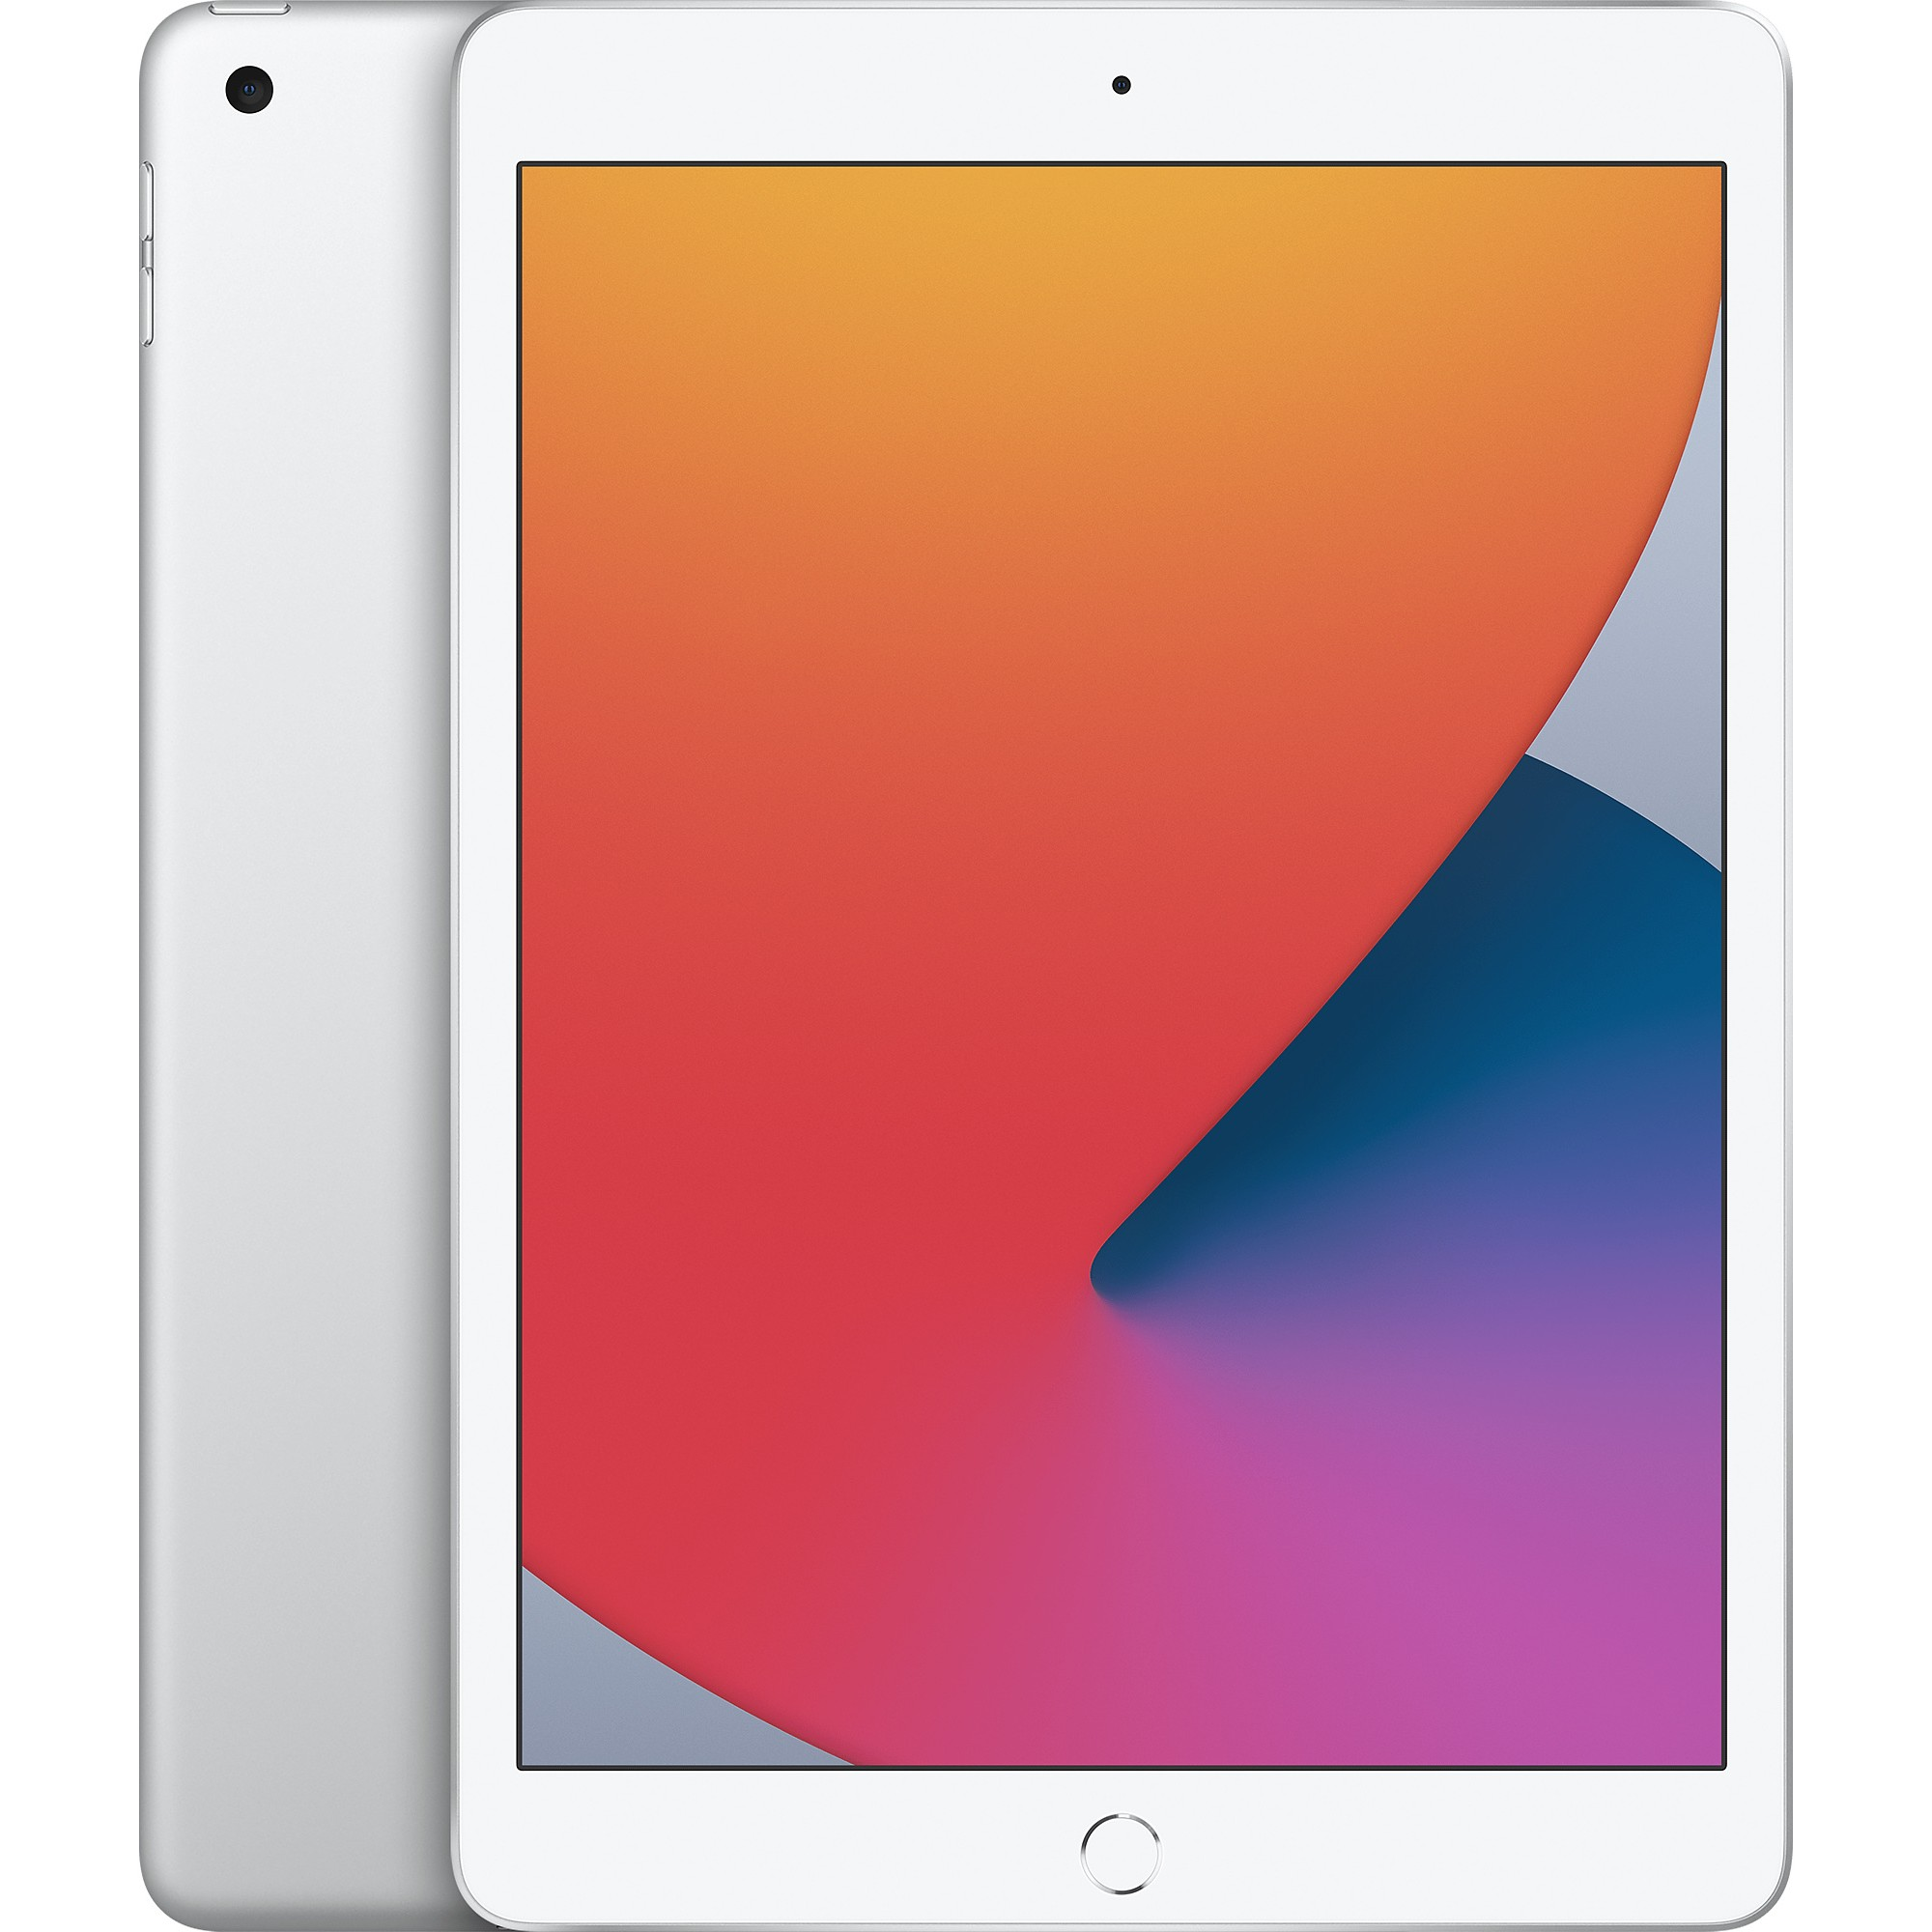 Image of Apple iPad 10.2 (2020) 128GB Wifi - White Silver